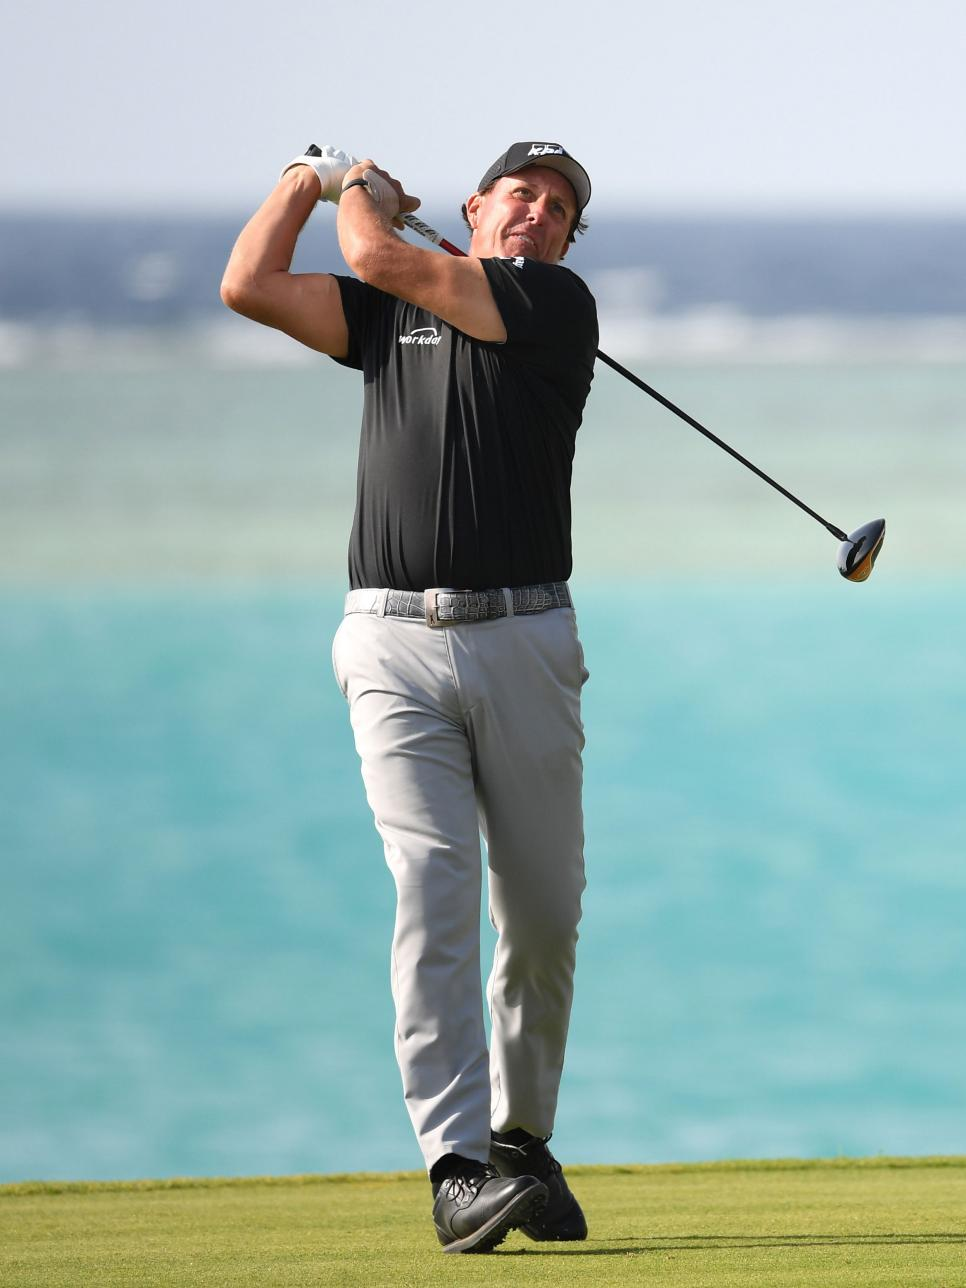 phil-mickelson-saudi-arabia-2020-sunday.jpg